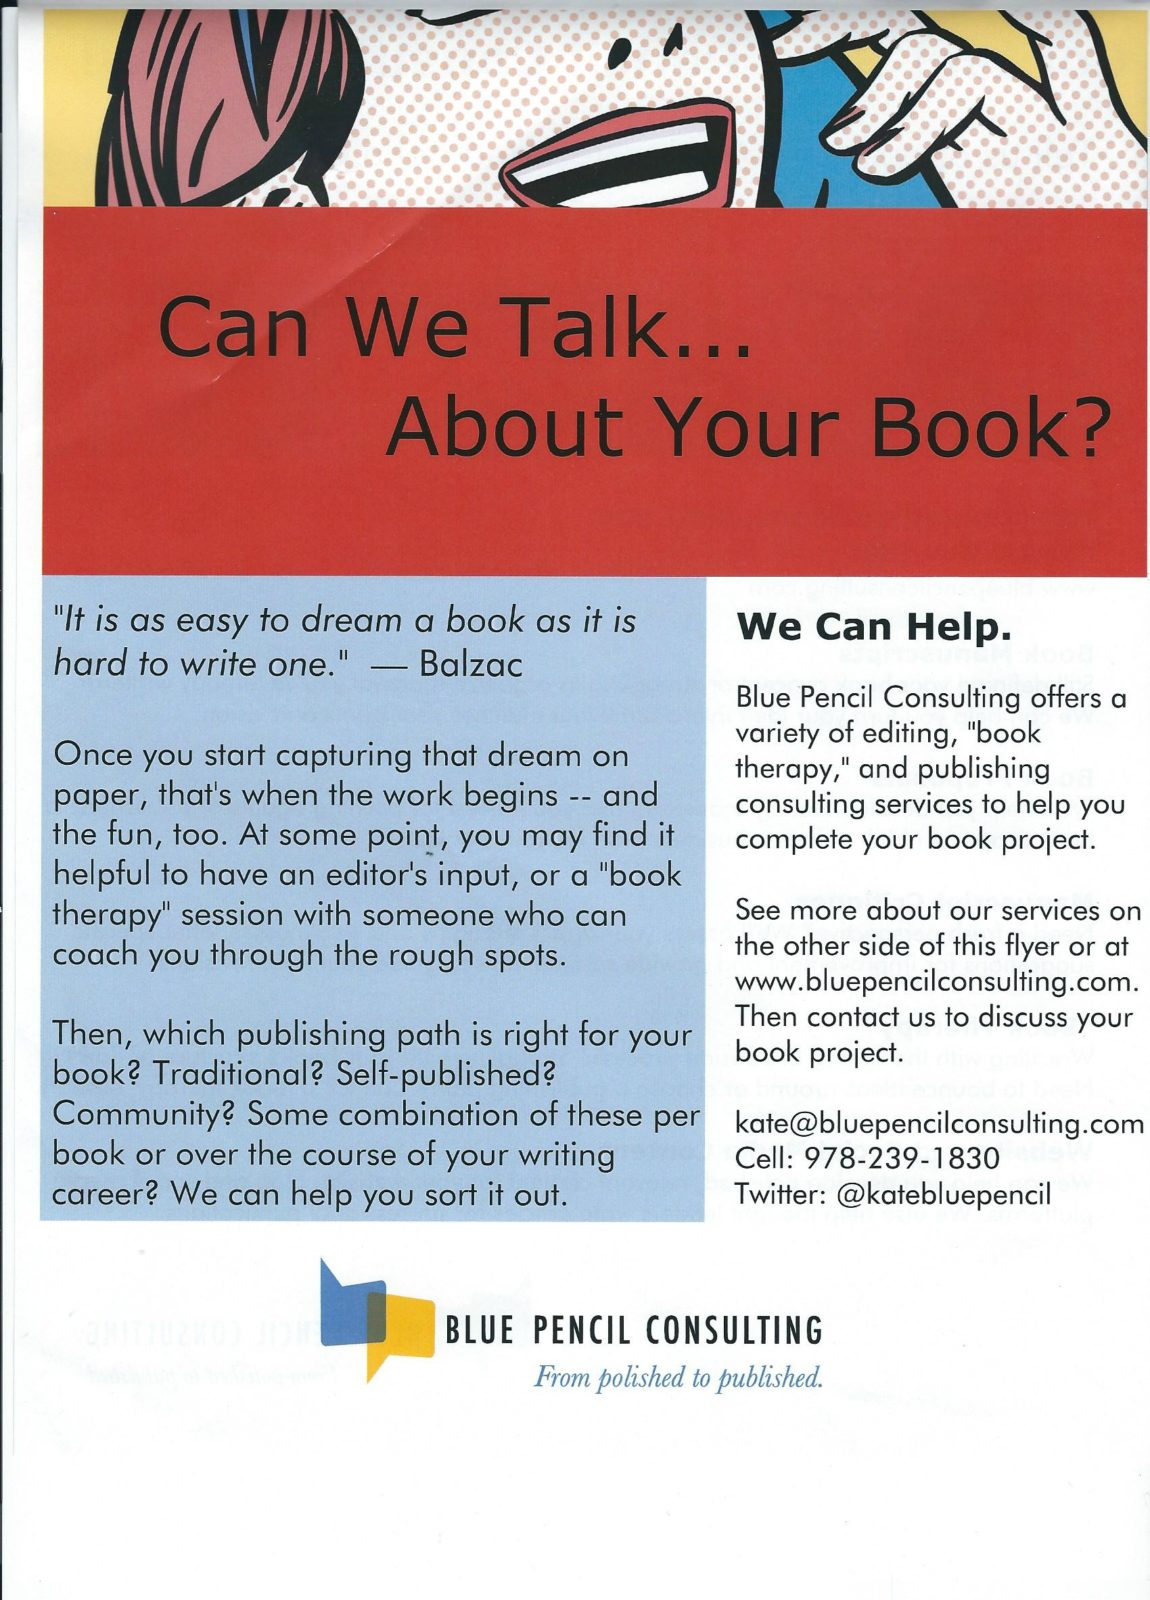 Stop by for a chat about your book project!